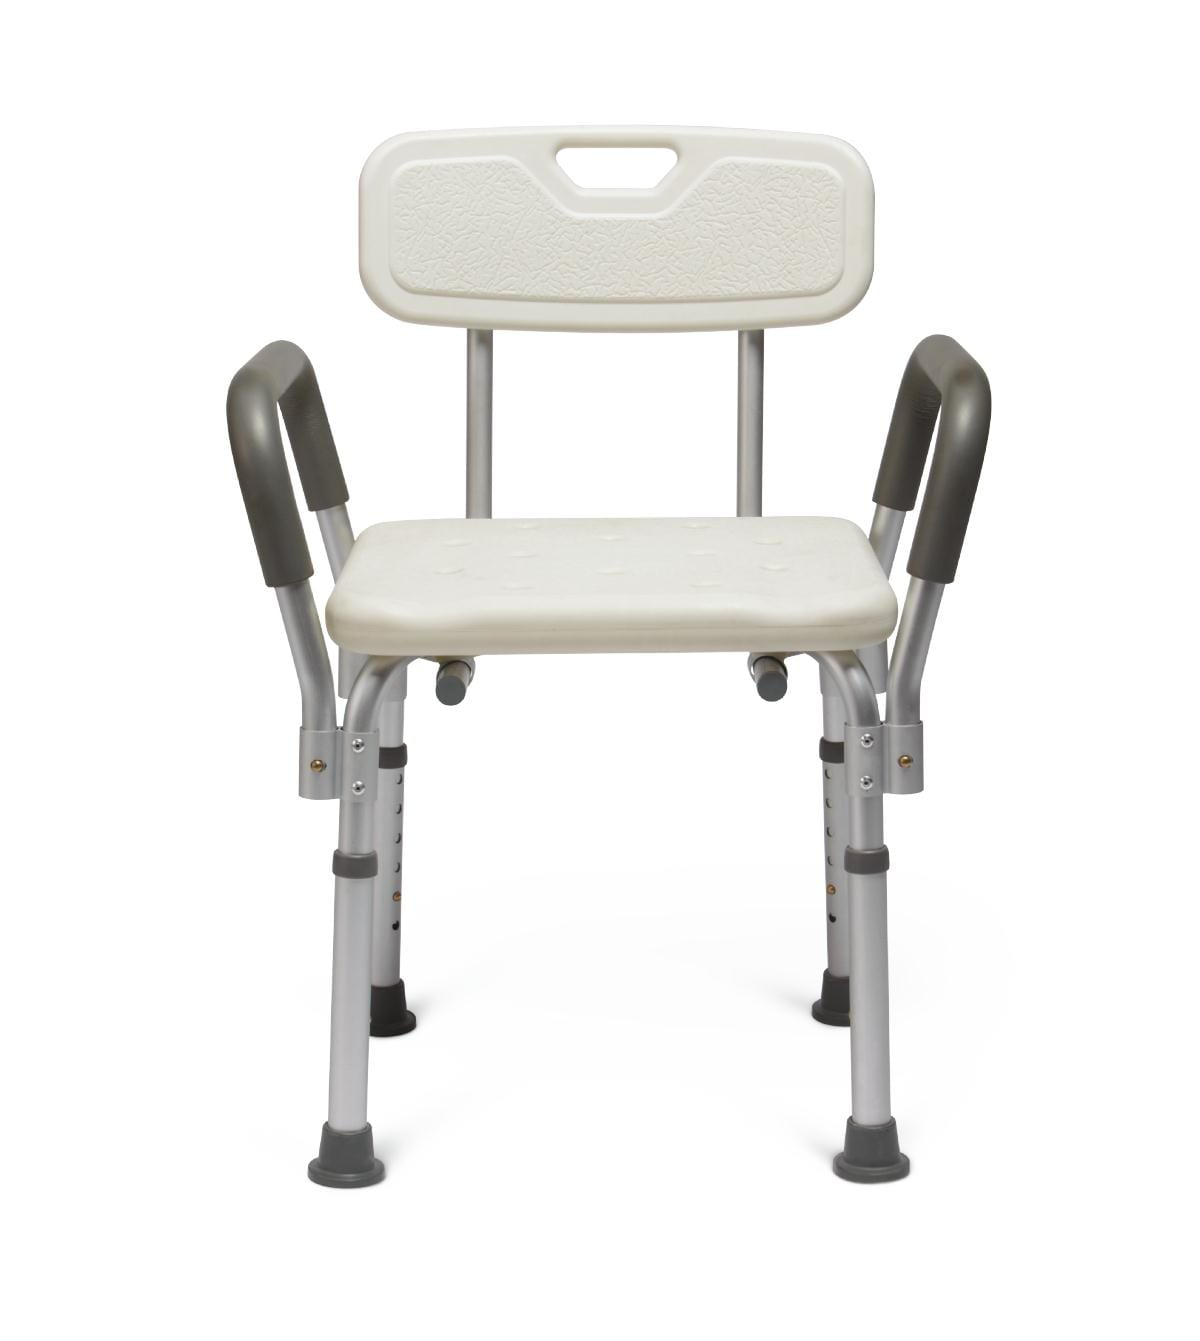 easy to assemble bath seat with arms and back